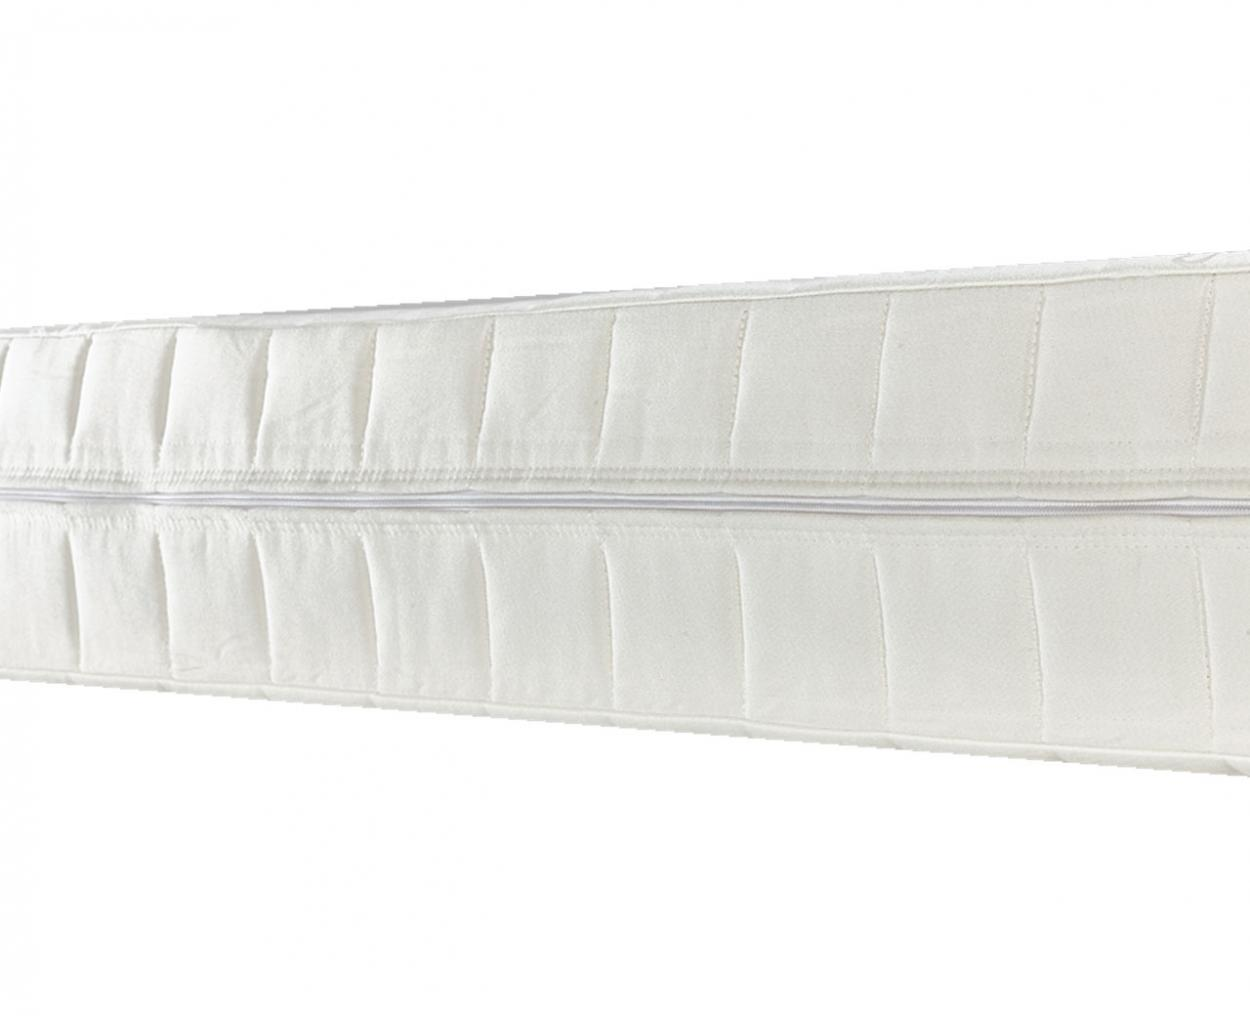 CandiaStrom - Mattress SOUTHERN ESSENCE - NATUREZZA COLLECTION -  Side View